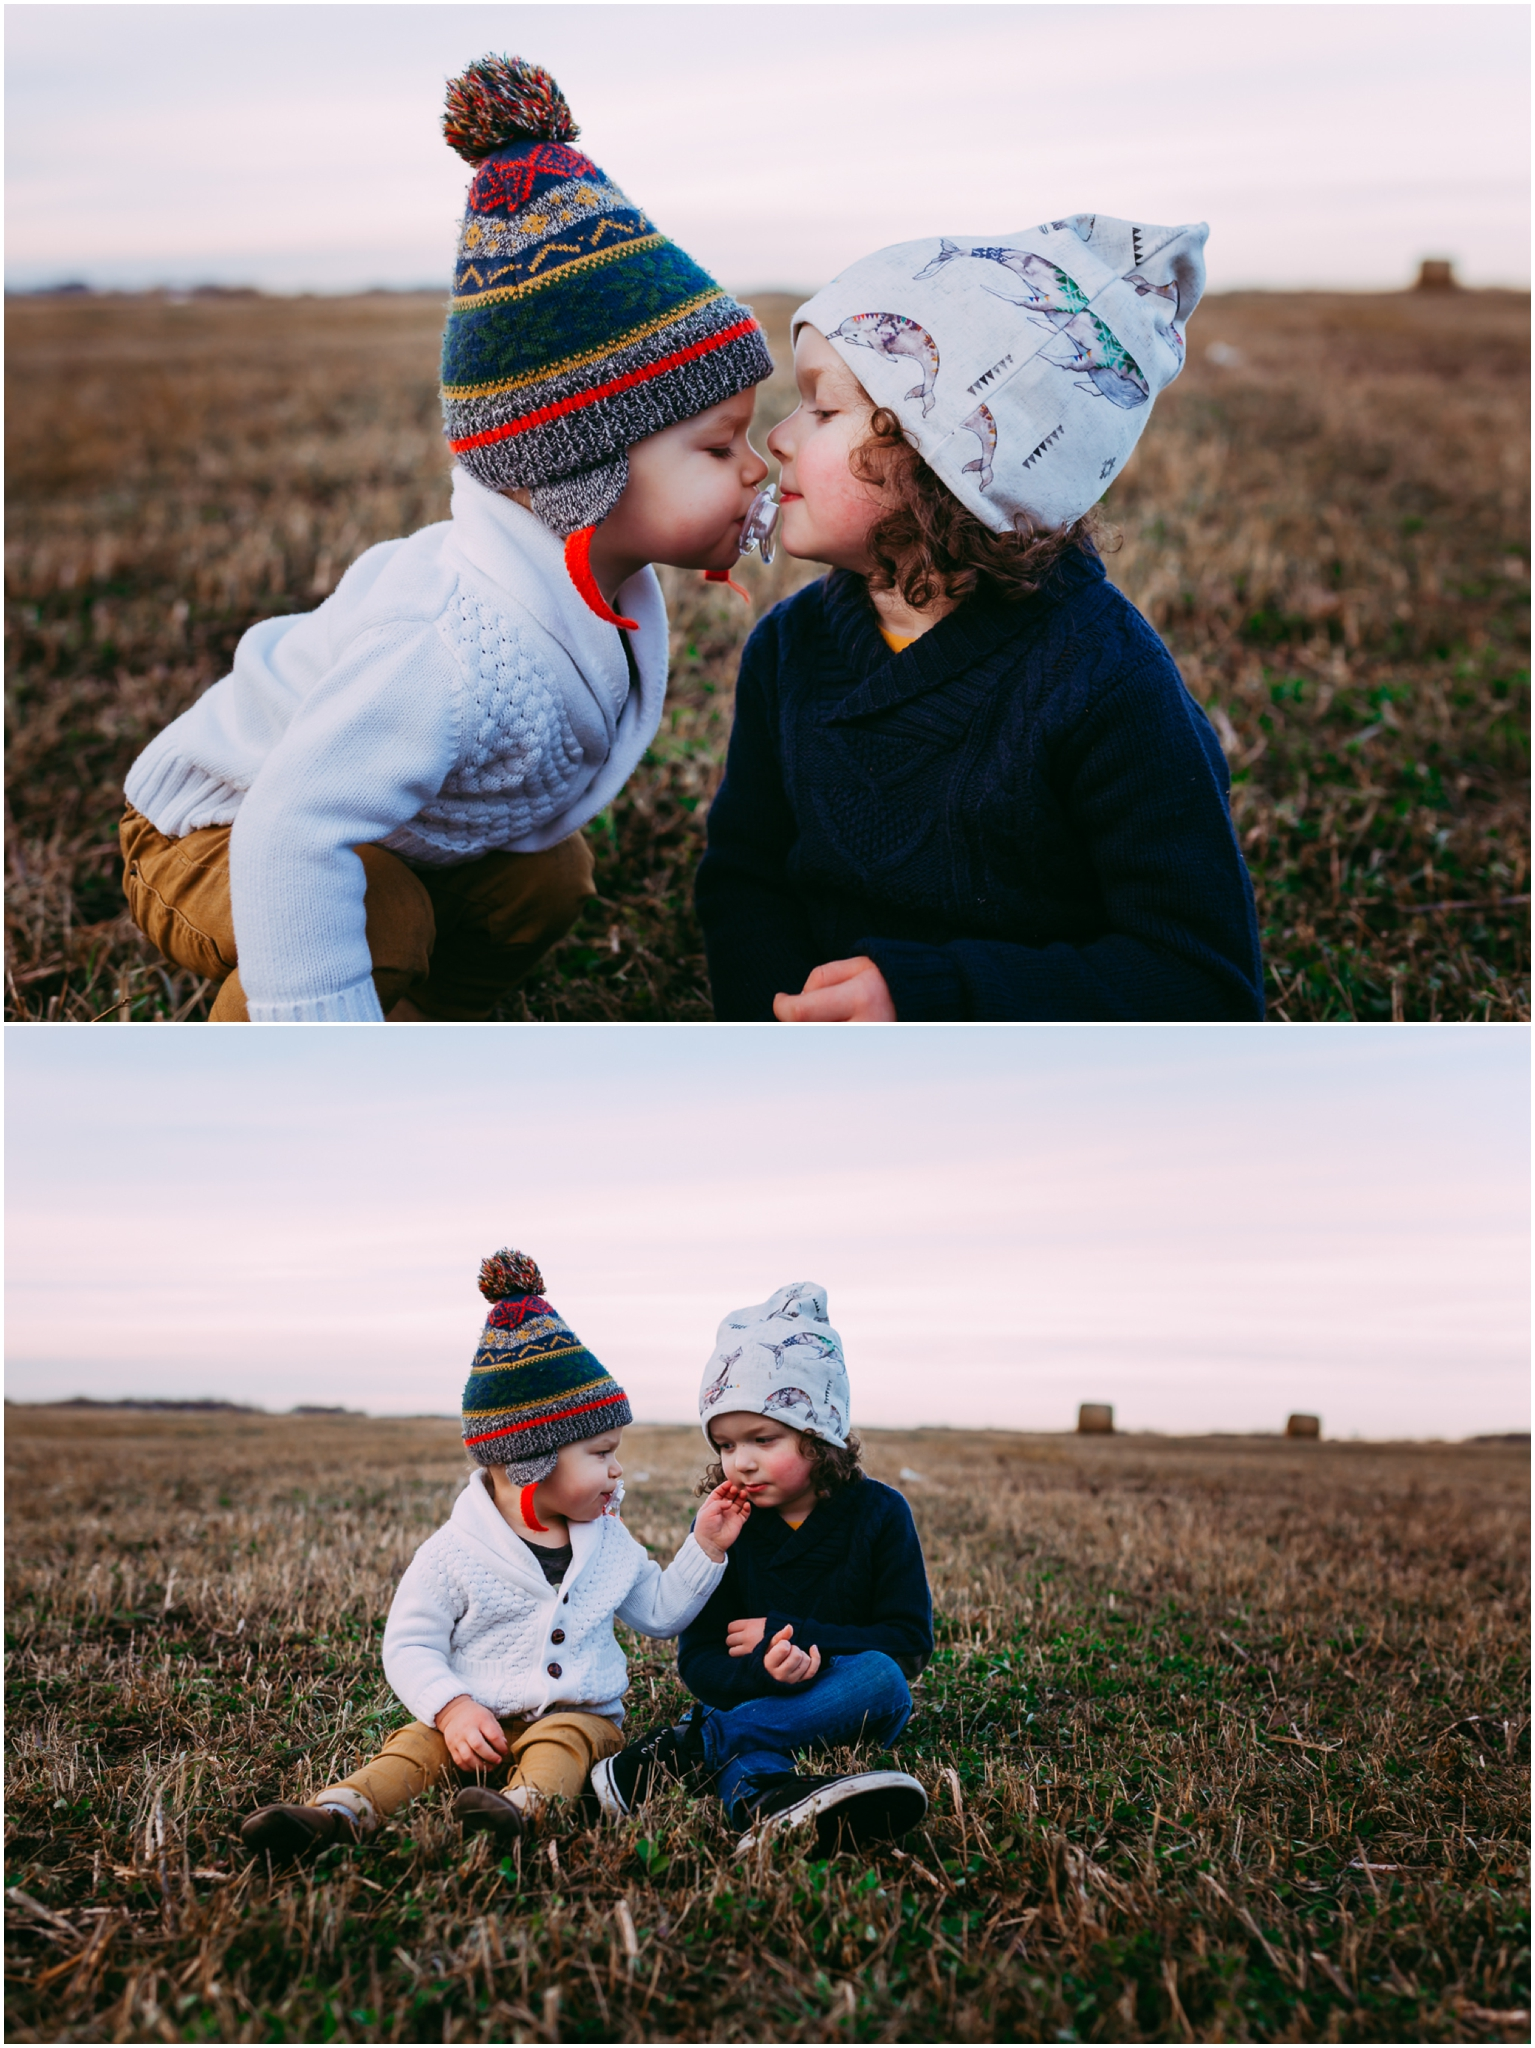 Edmonton Family Photographer - YEG - Best of 2016 - Brothers - Autumn - Toques - Olive Me Handmade - Hay bales - Outdoor adventure - brotherly love